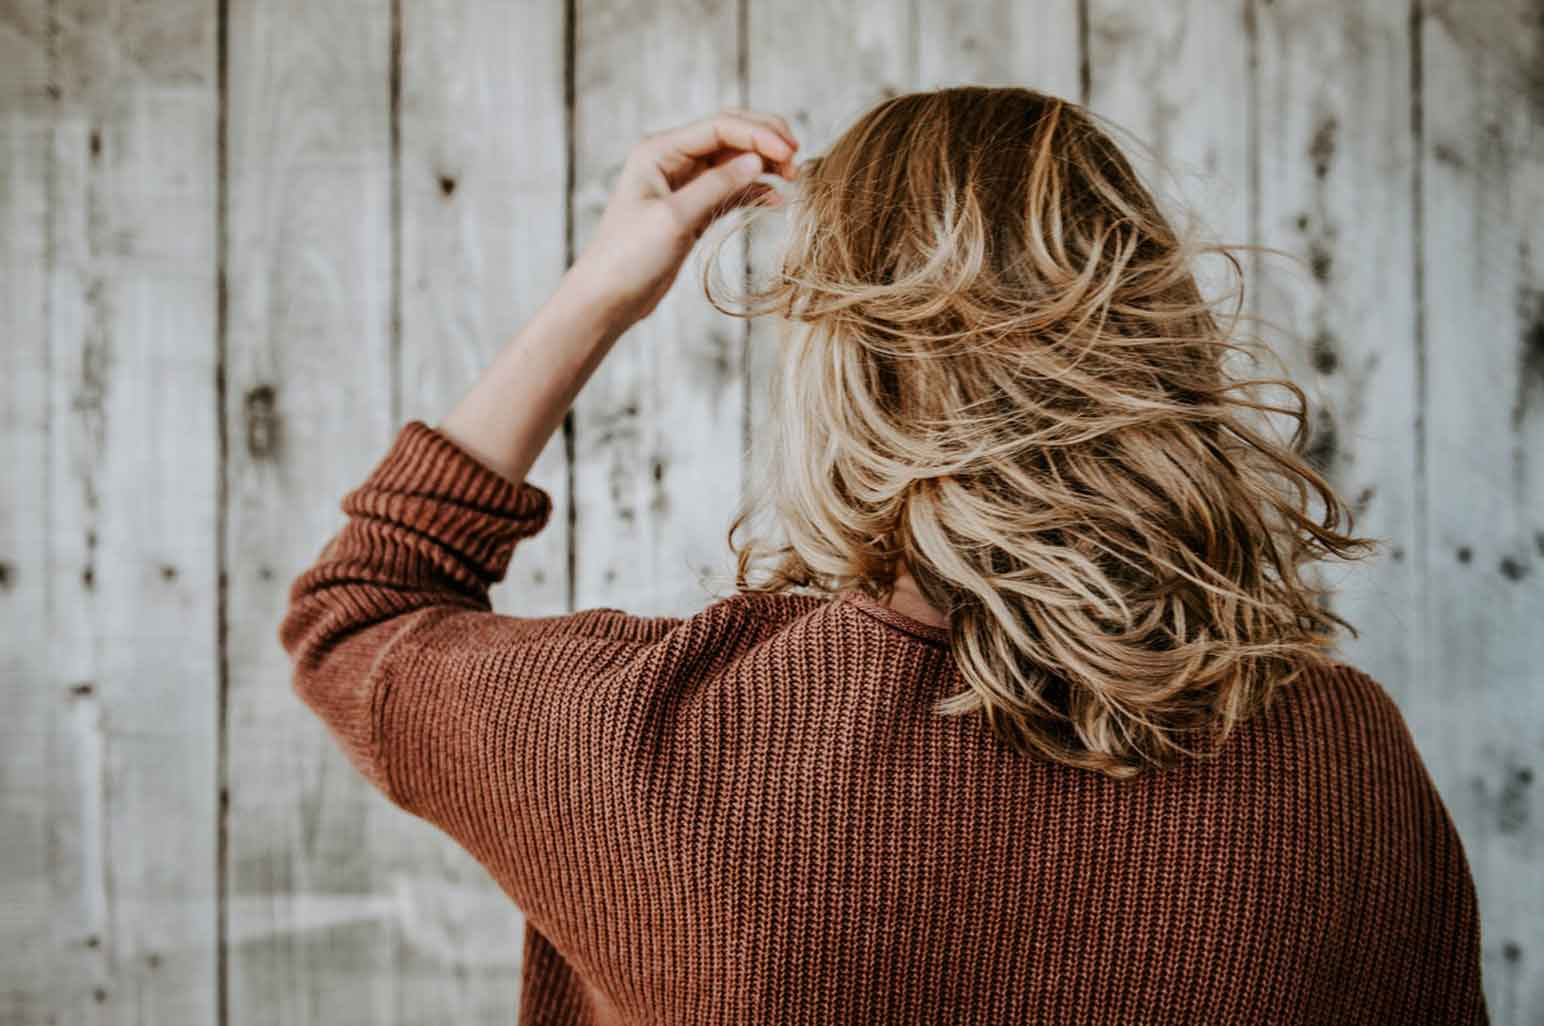 Facts About Trichotillomania That Might Interest You